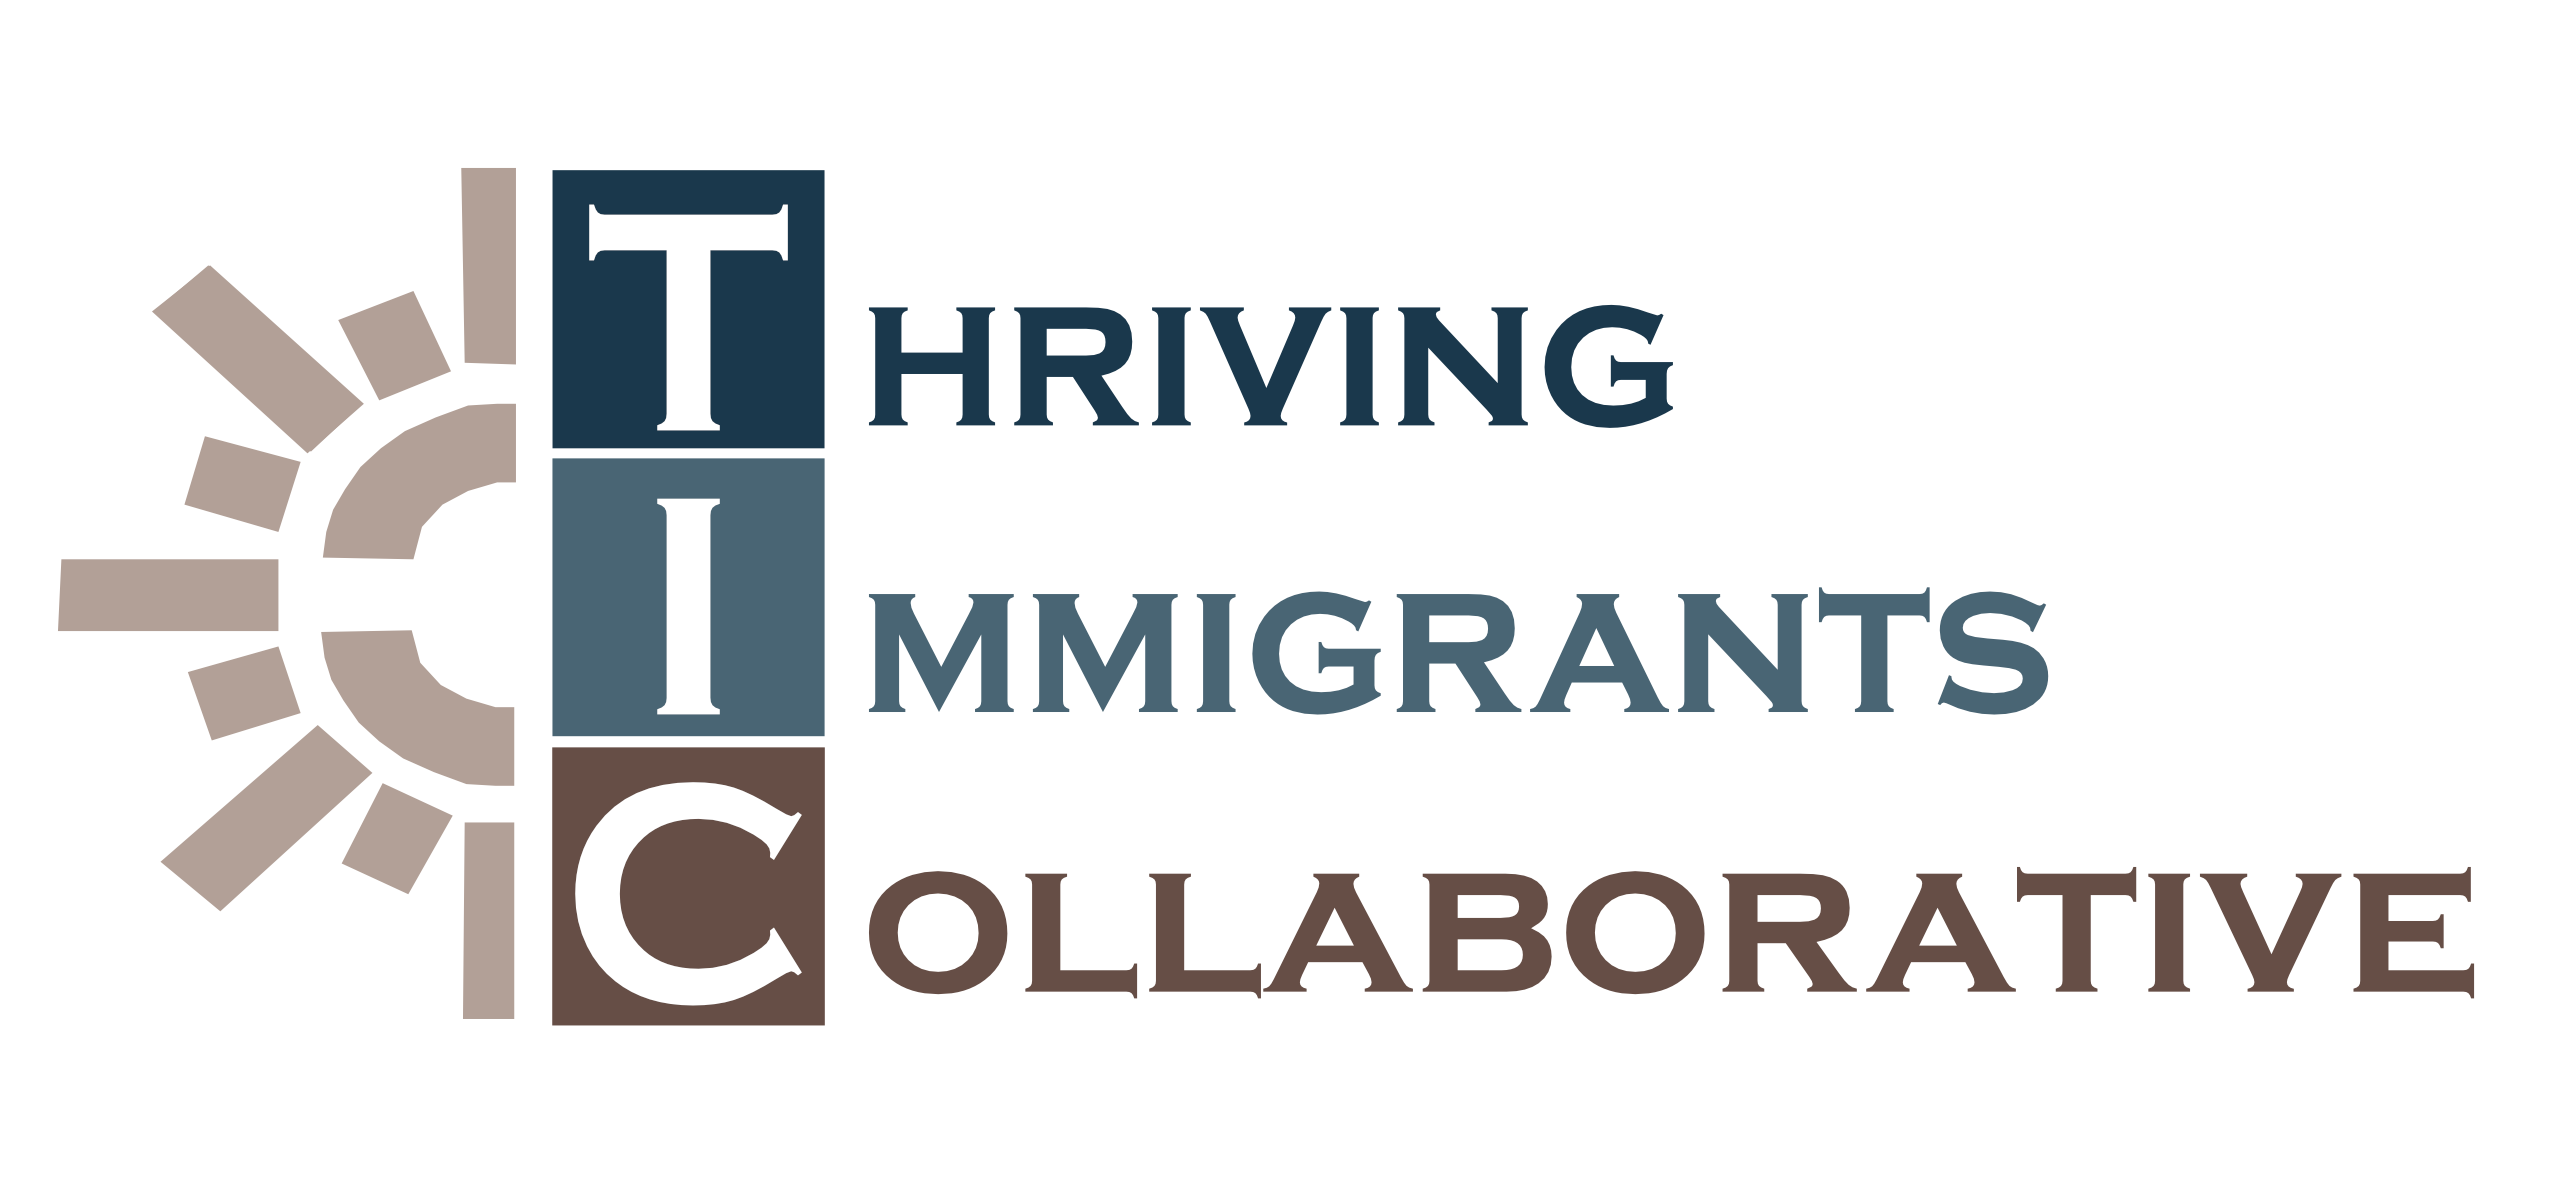 Thriving Immigrants Collaborative